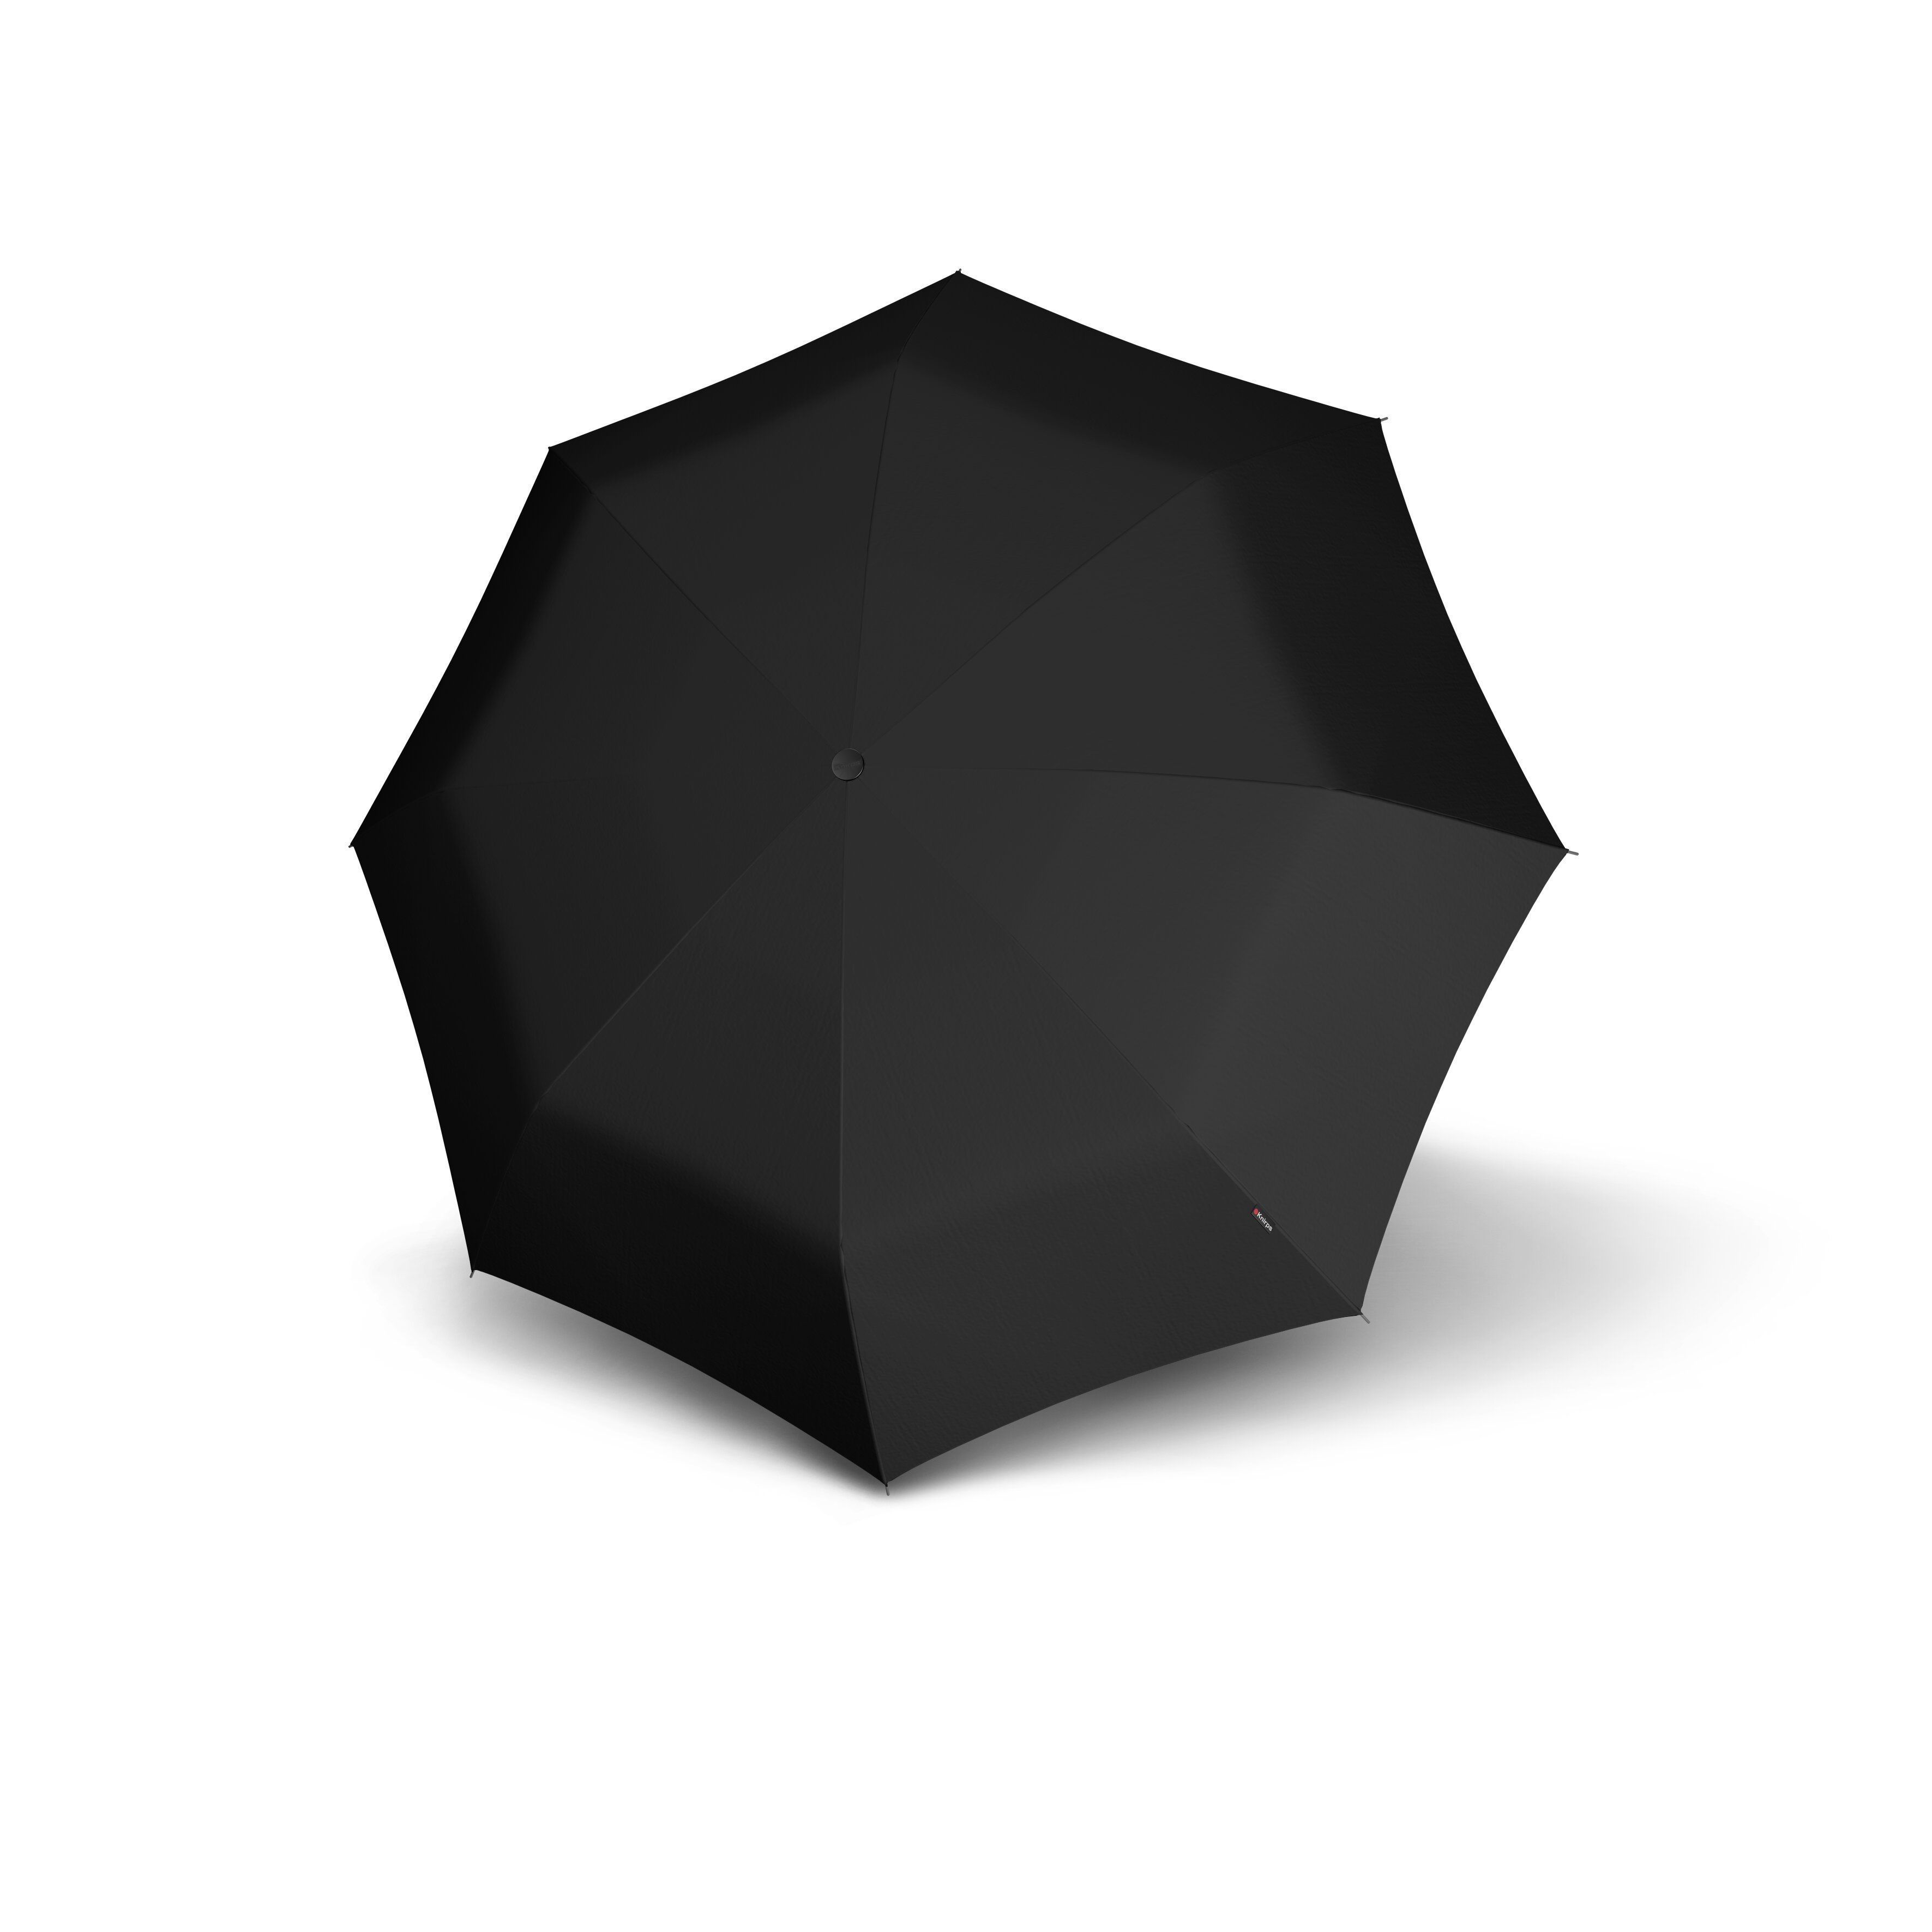 Knirps Umbrella T.900 extra long automatic - photo 2